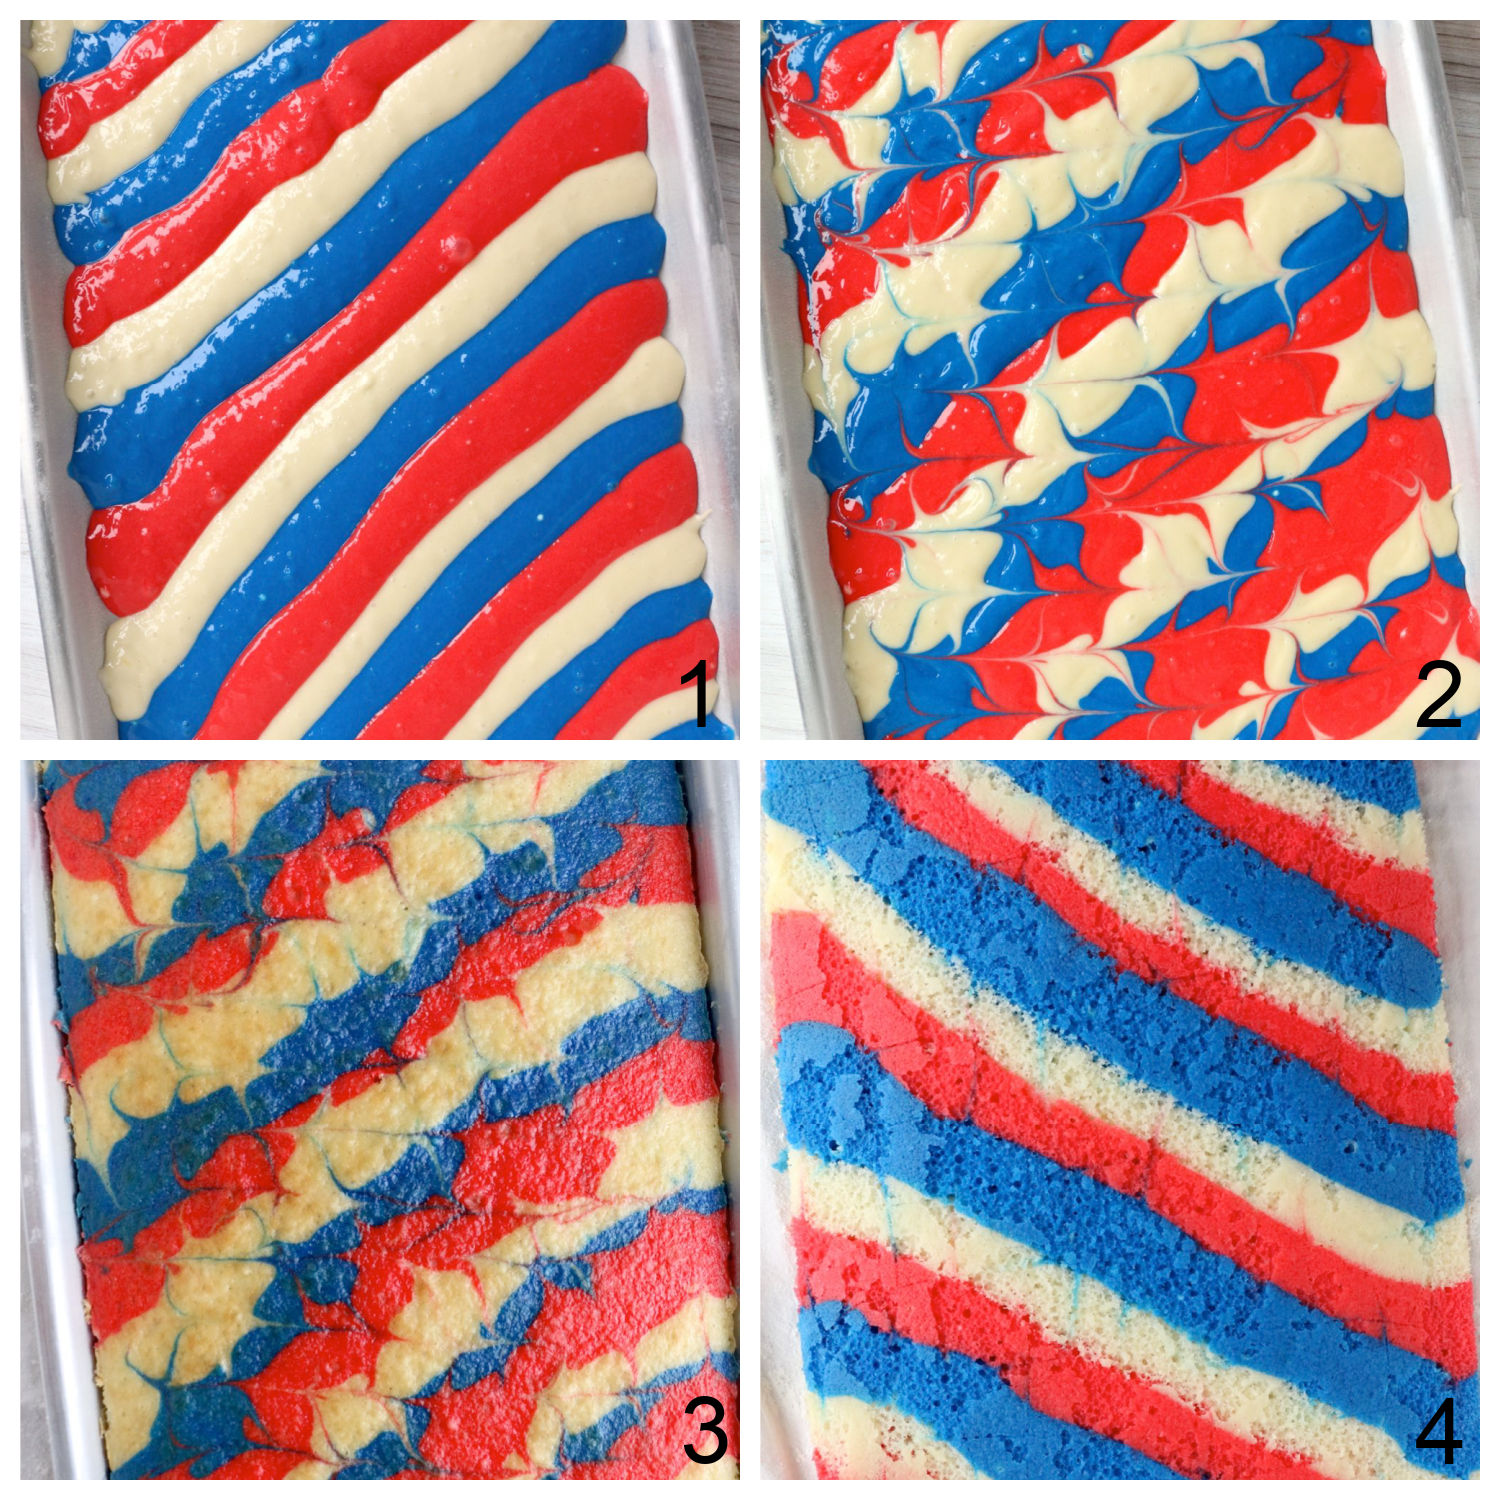 Steps for making a red, white and blue cake roll